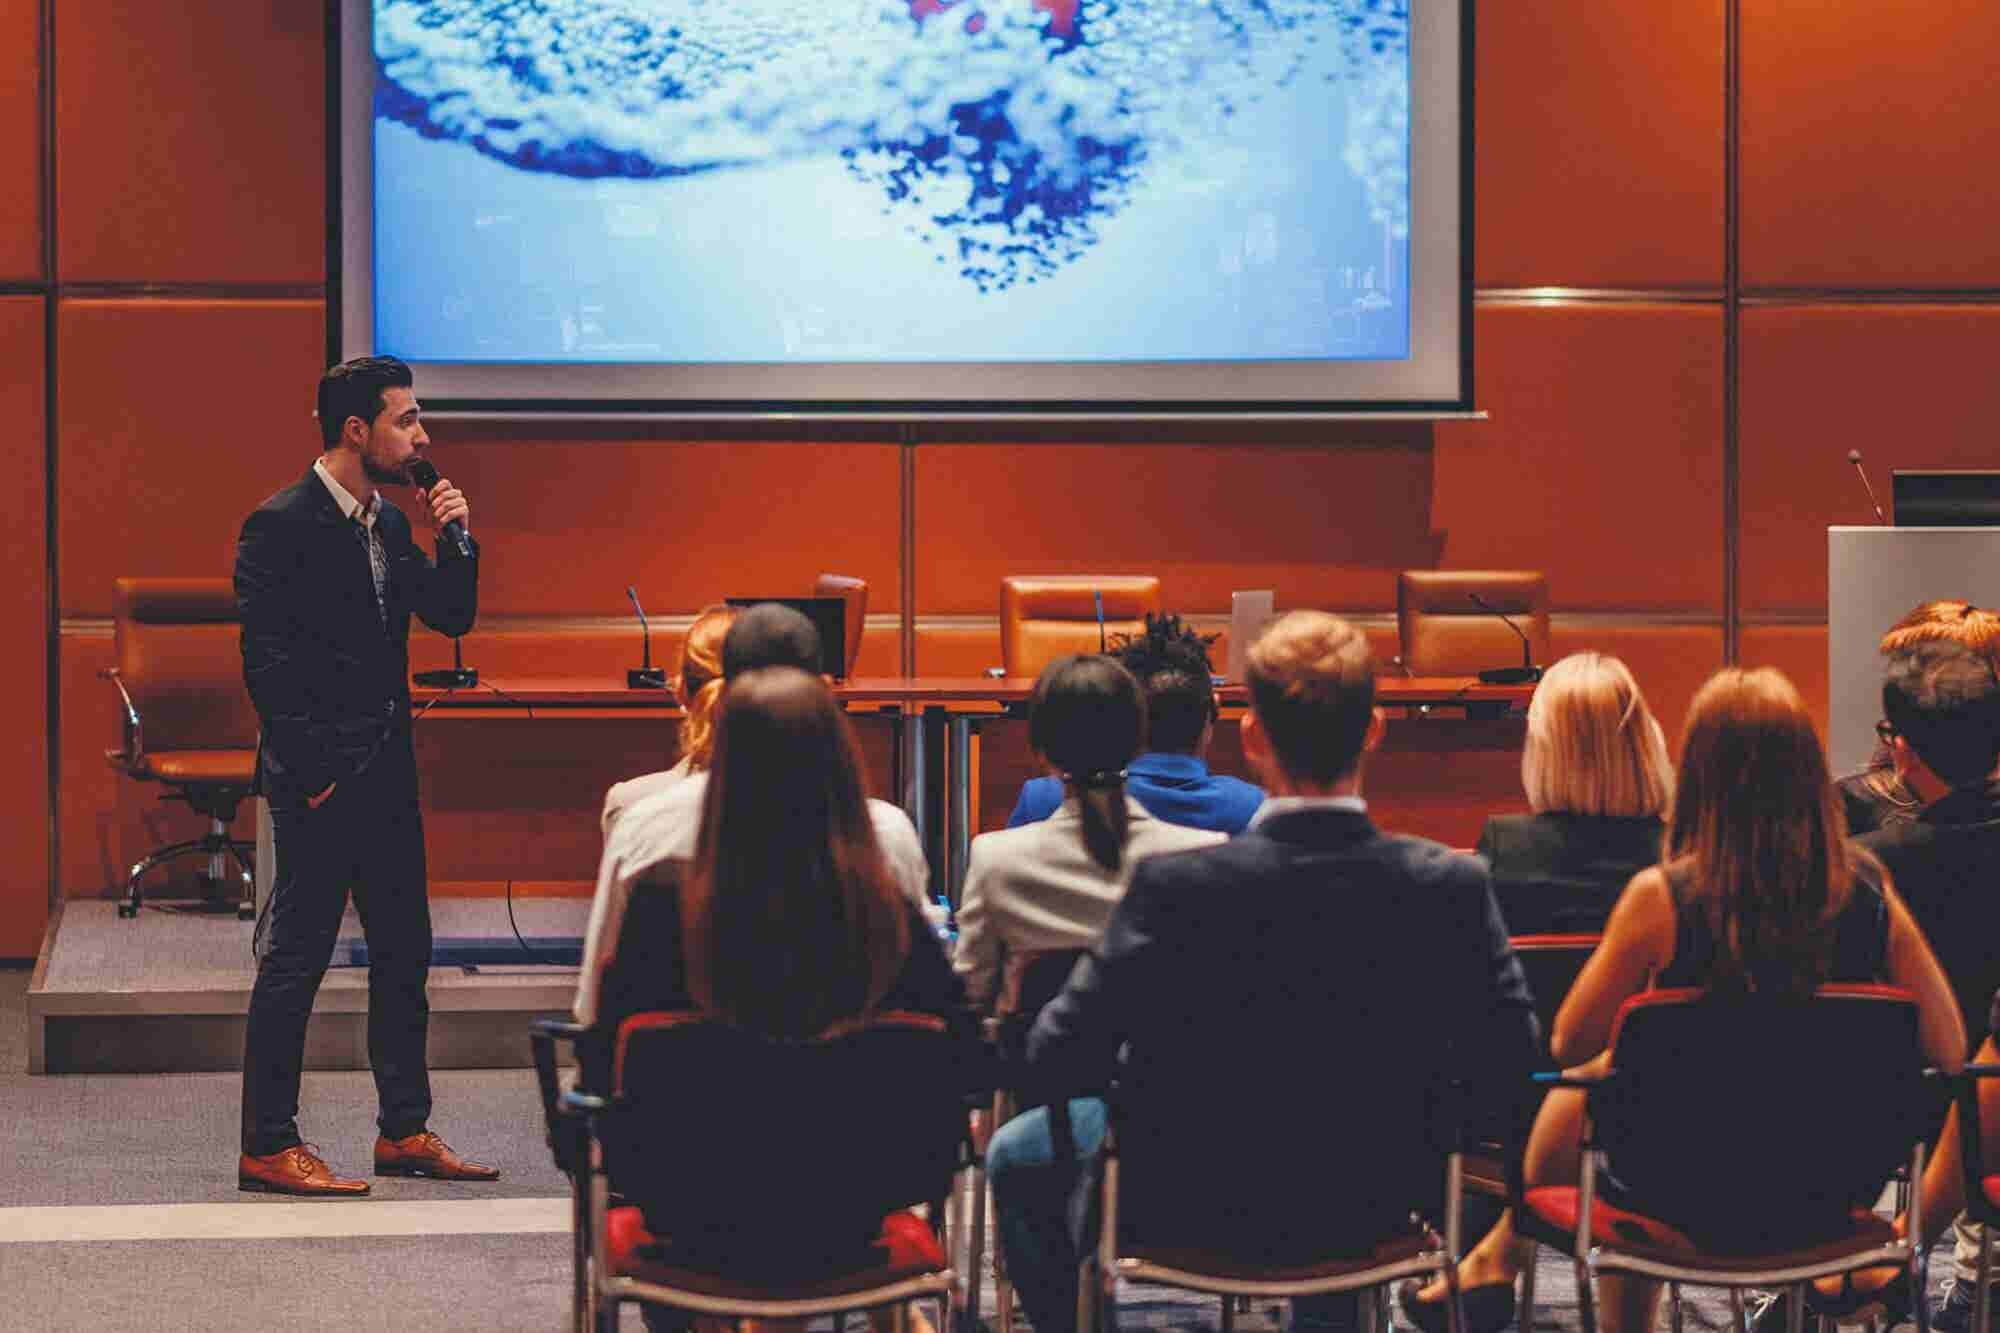 5 Myths About Presenting and How Overcoming Them Can Increase Your Impact